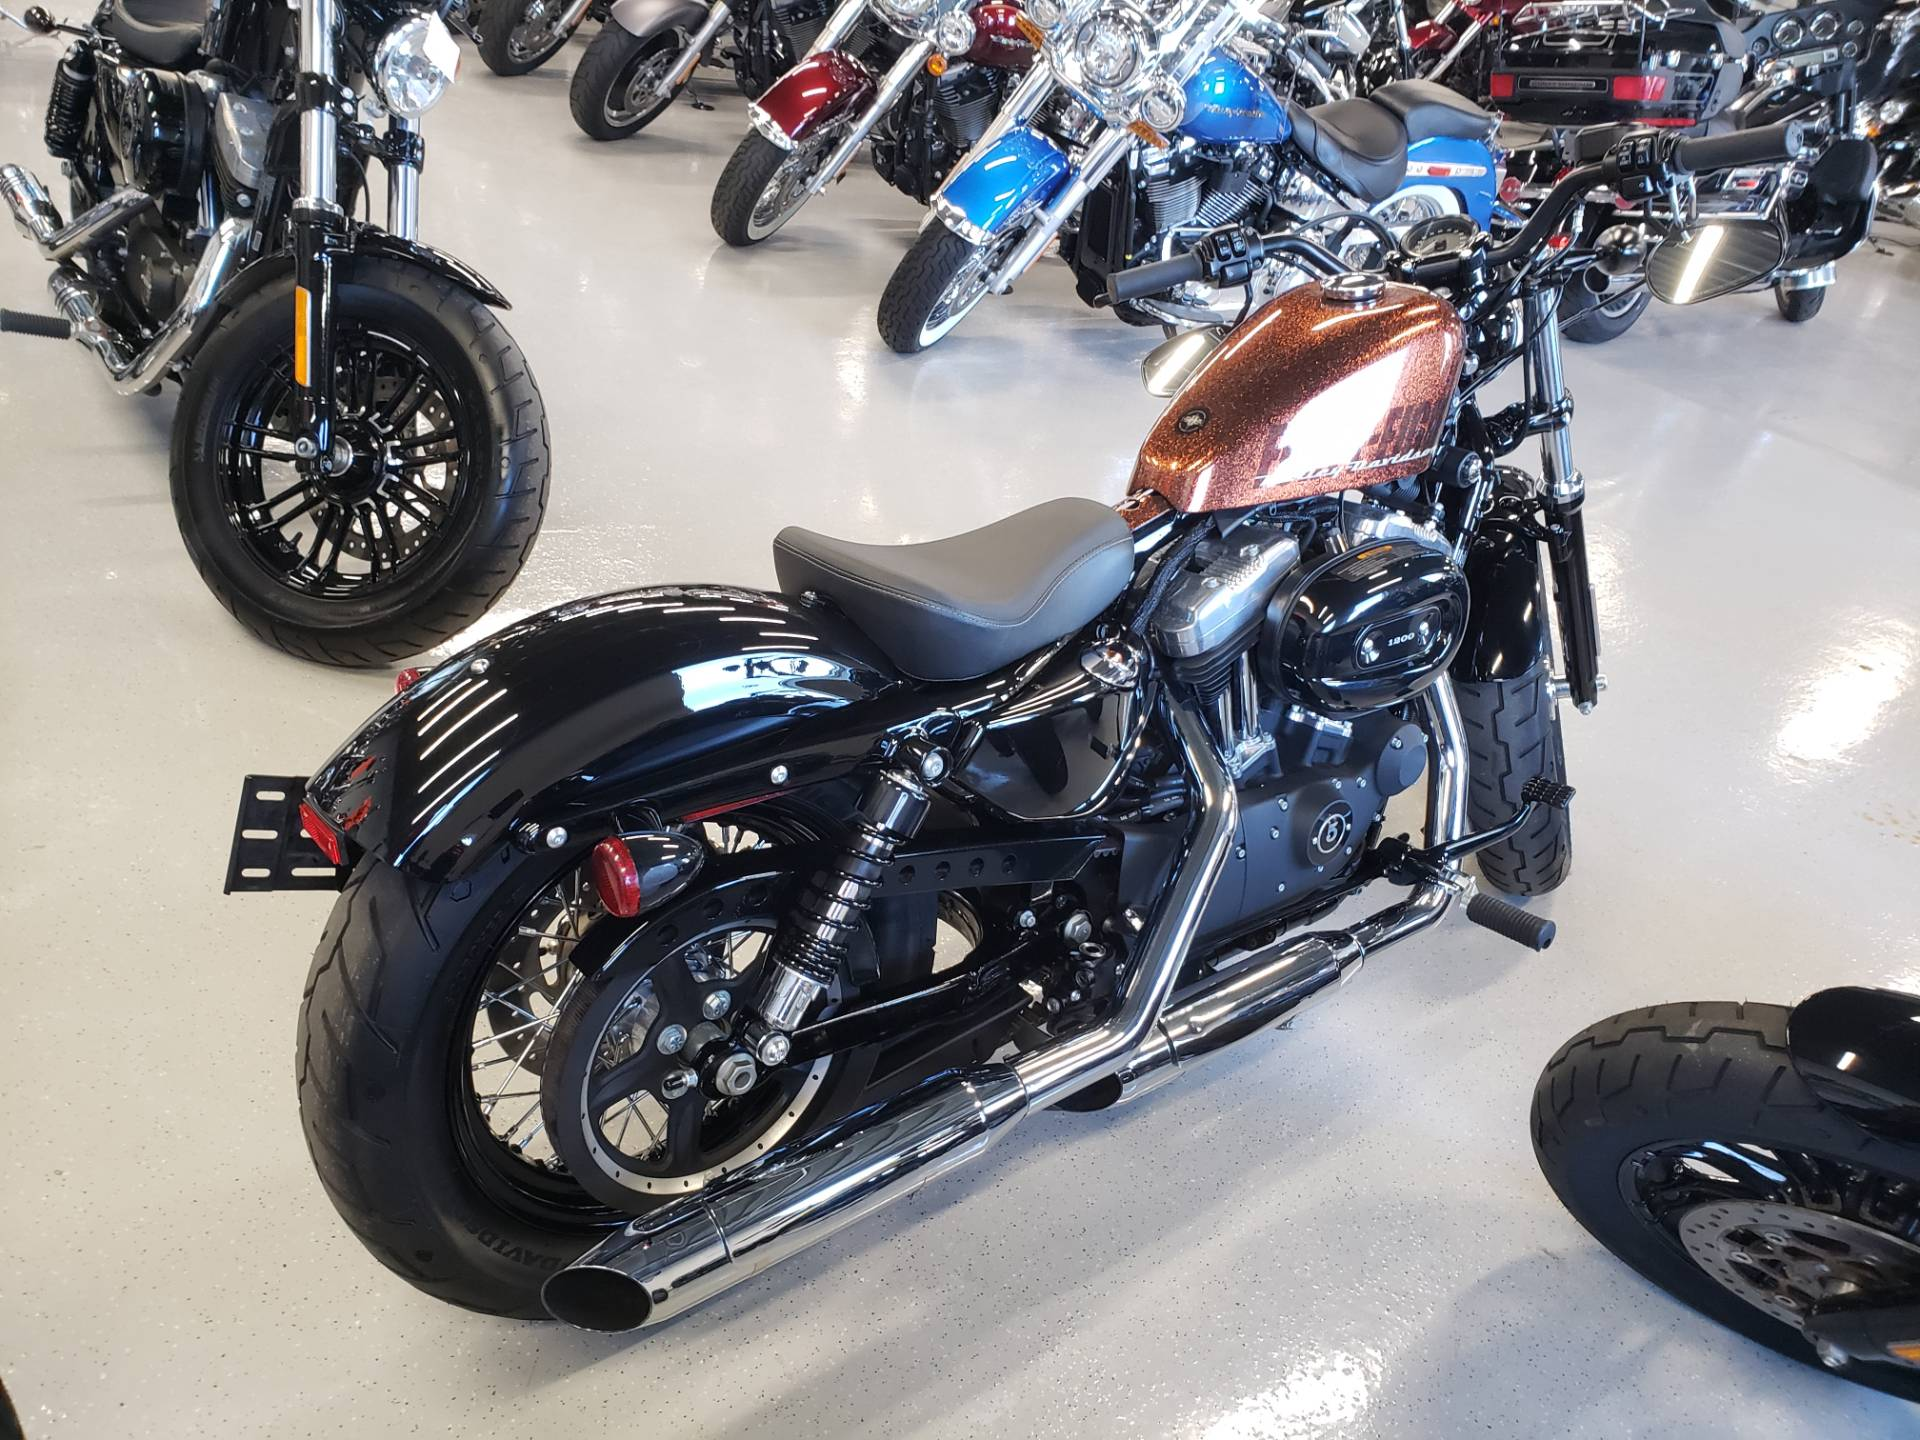 Used 2014 Harley Davidson Sportster Forty Eight Motorcycles In